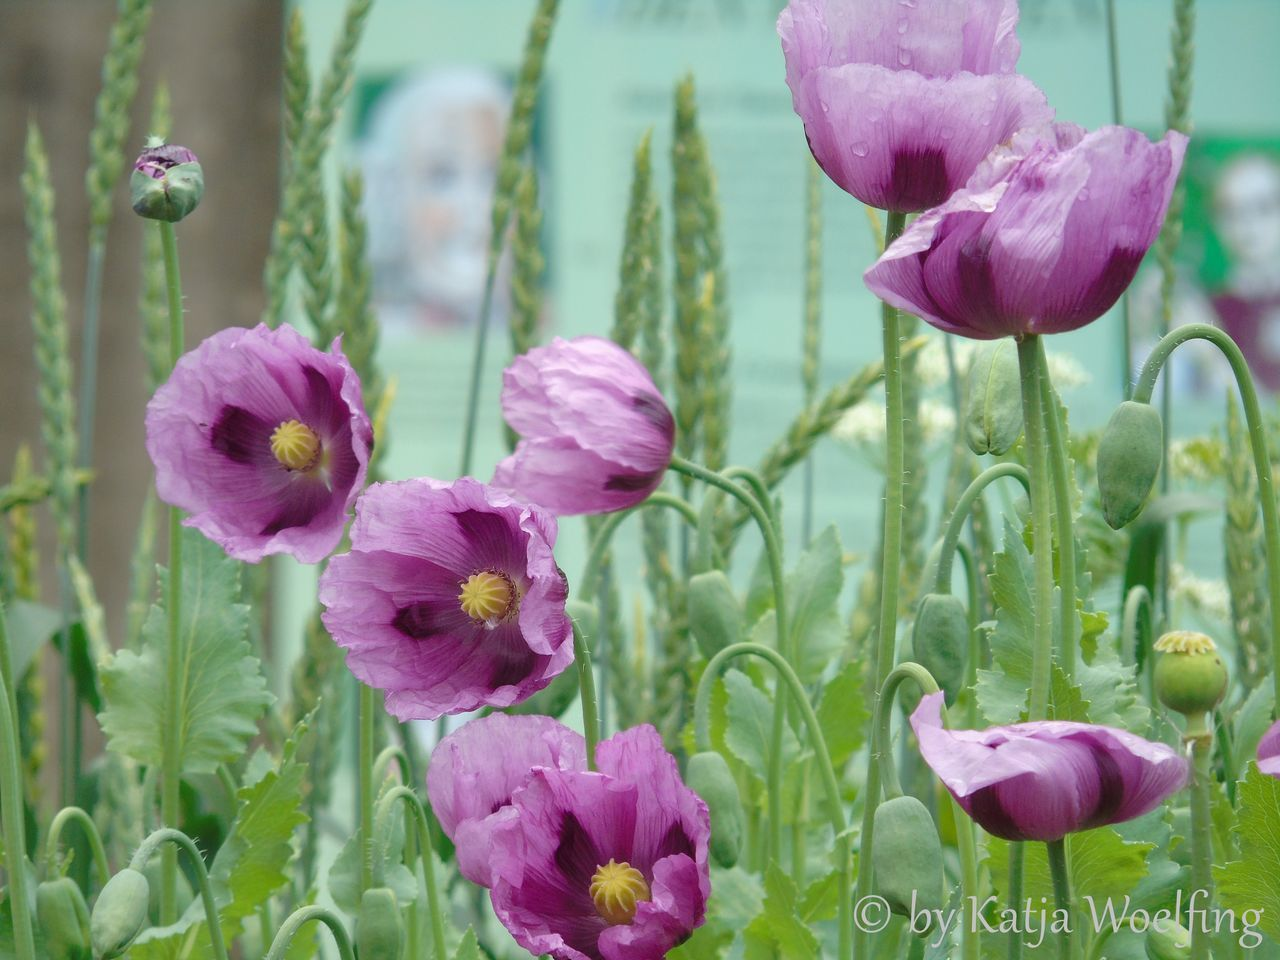 flower, petal, growth, beauty in nature, nature, plant, fragility, freshness, flower head, blooming, no people, purple, focus on foreground, close-up, outdoors, day, pink color, crocus